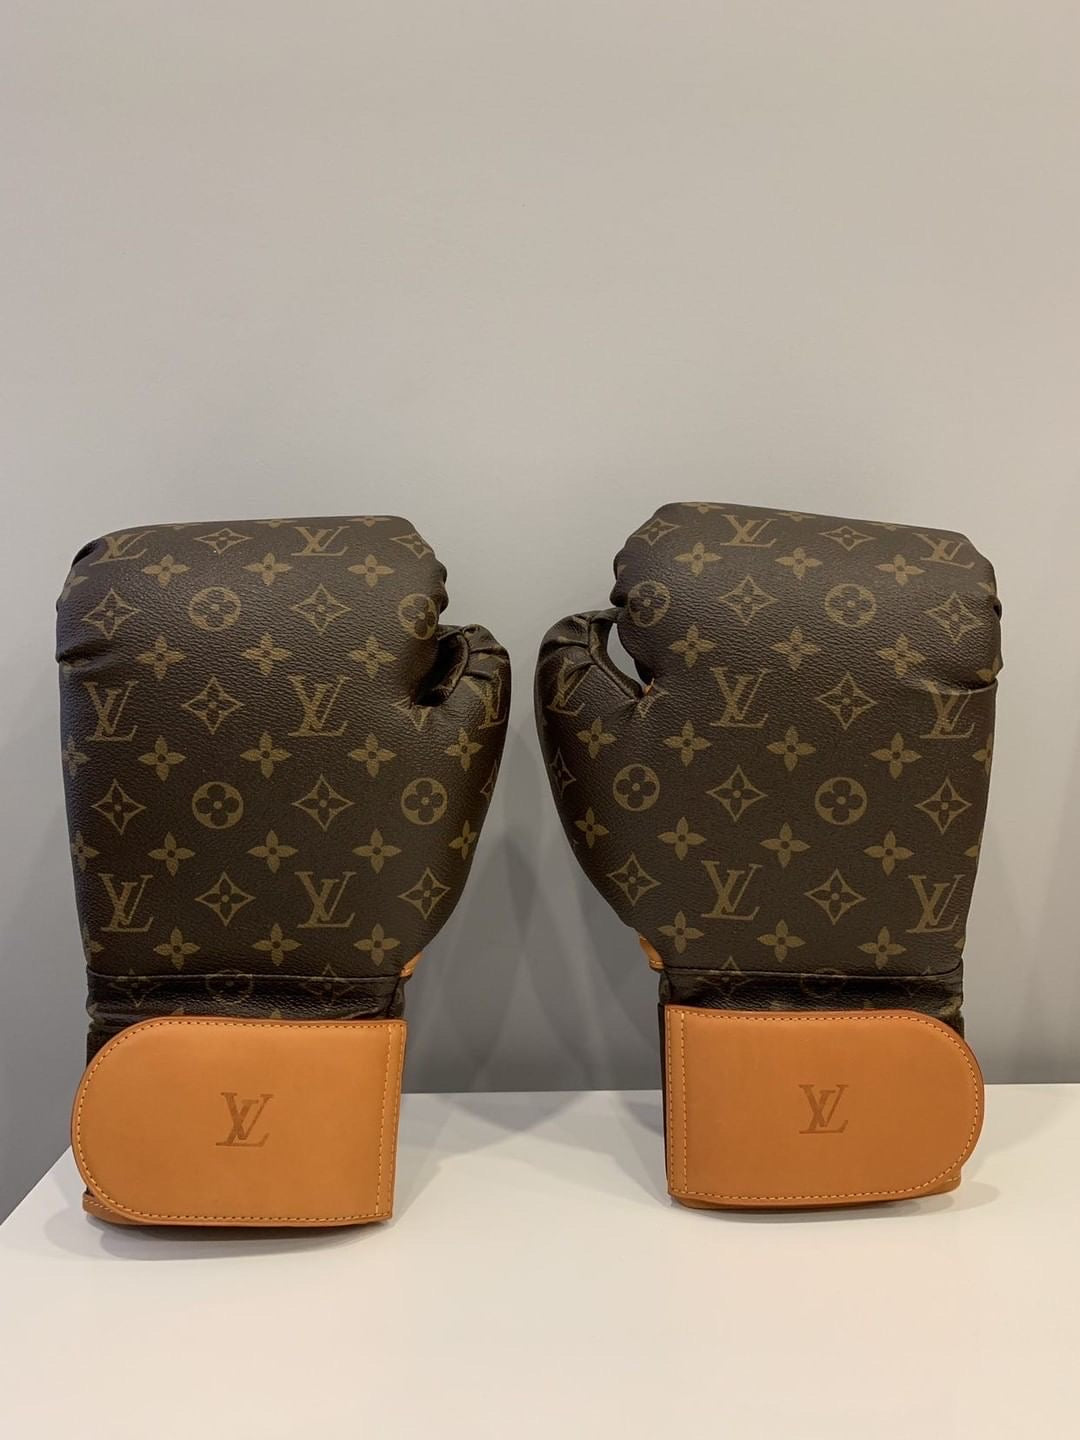 Louis Vuitton Karl Lagerfeld gloves